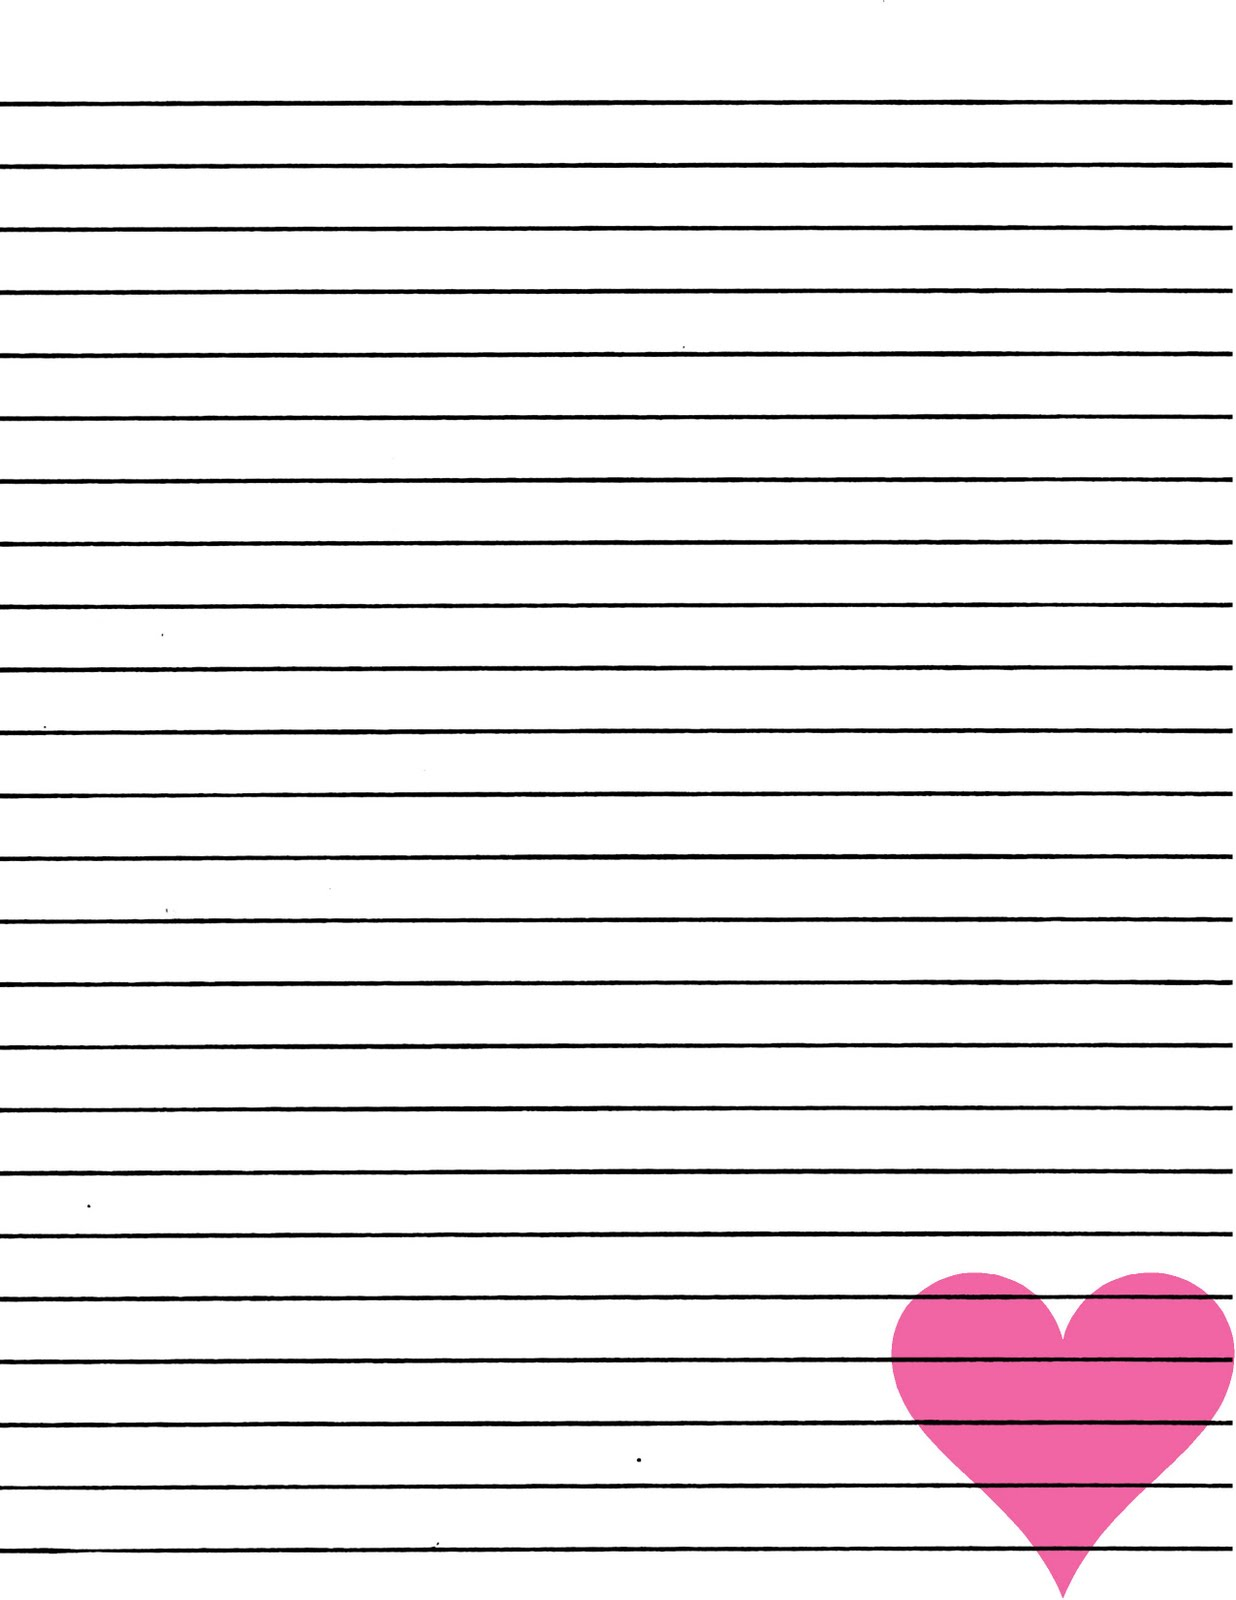 Printable A Writing Paper A Lined Paper besides Iebrb Bt furthermore Free Printable Lined Stationery Paper in addition School Lined Paper Medium Size Of Paper School Lined Paper Journal Card Everyday Parties Lined School Paper Background Primary Lined Paper Free together with Heart Lined Paper. on printable lined writing paper for kids